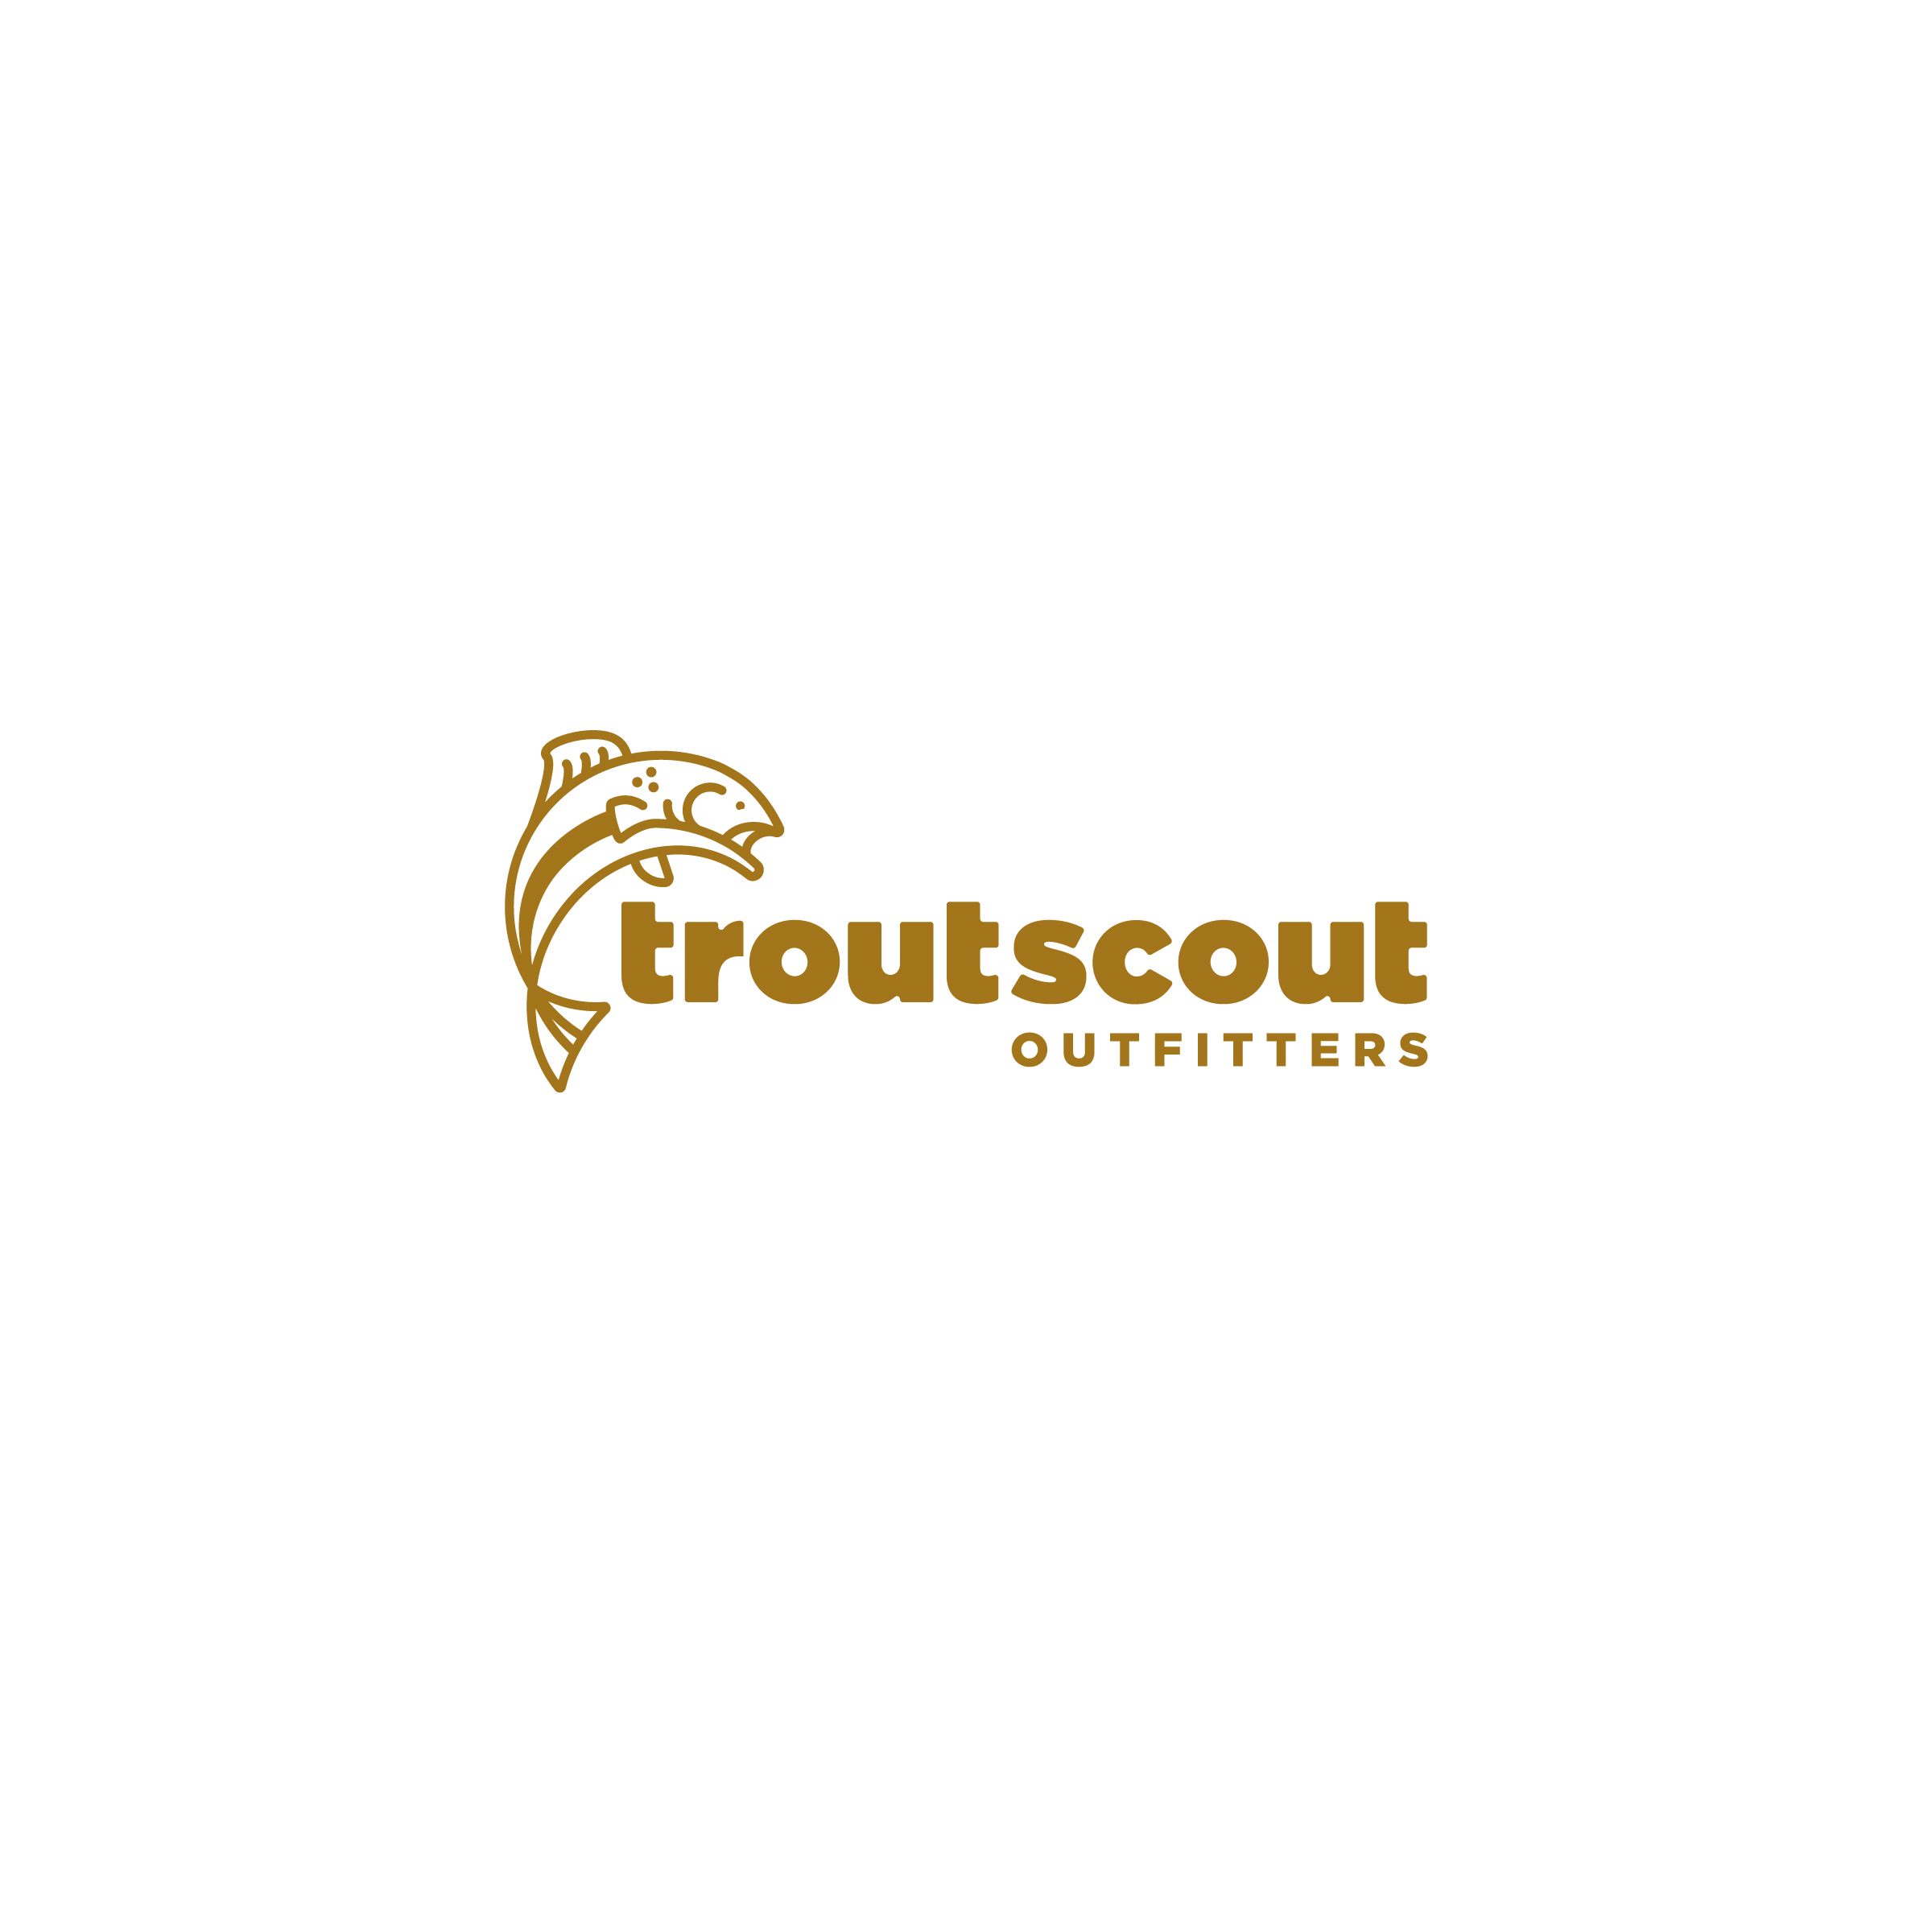 TroutScoutOutfitters_LtBrown_Hrzt.jpg